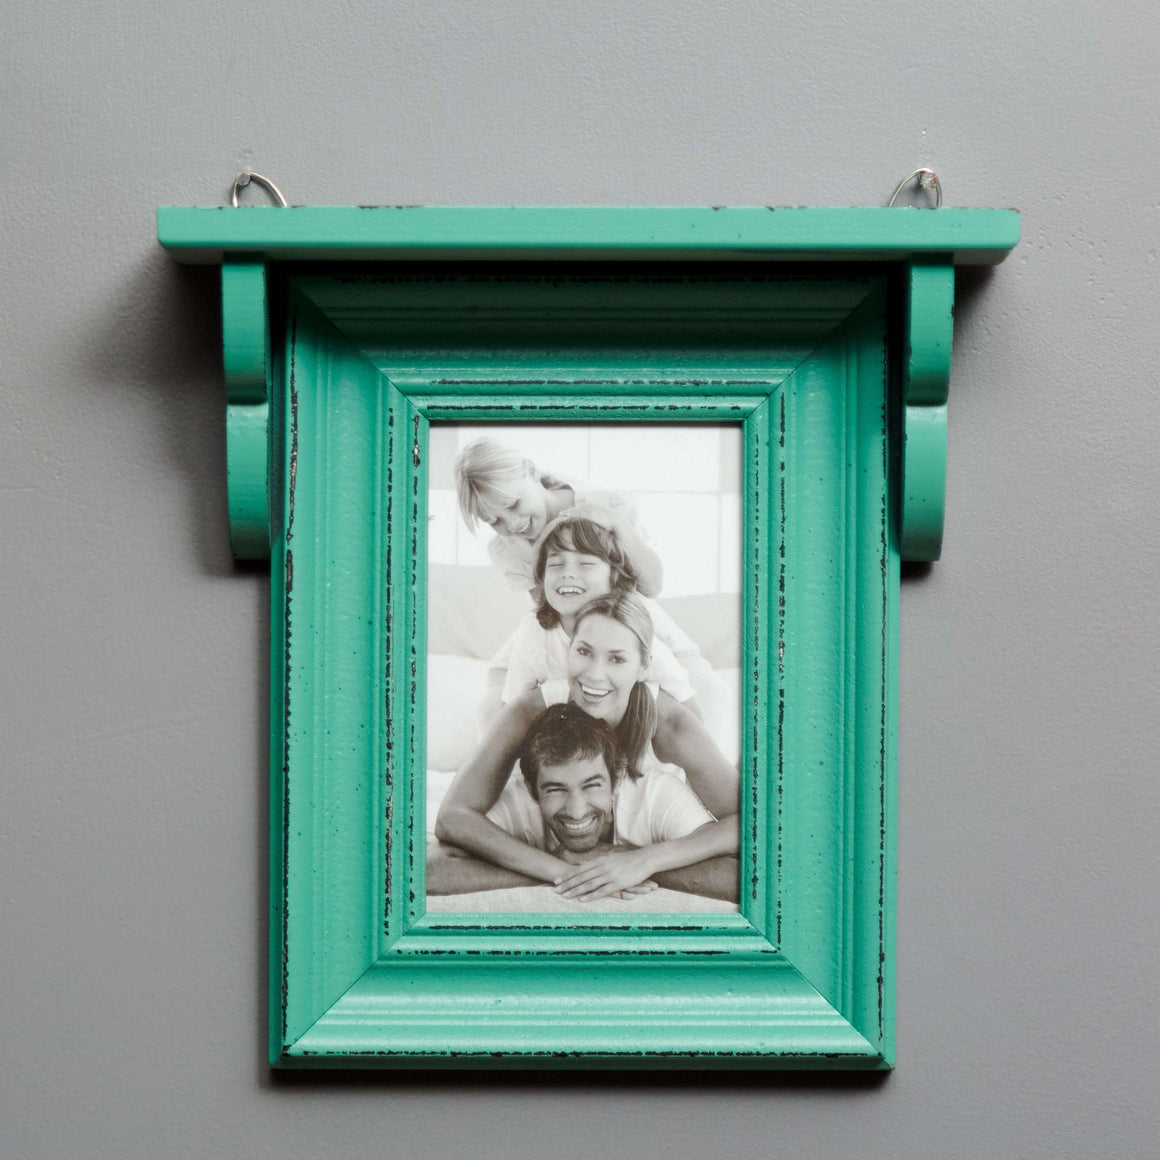 Distressed Teal Shelf with Single Photo Frame